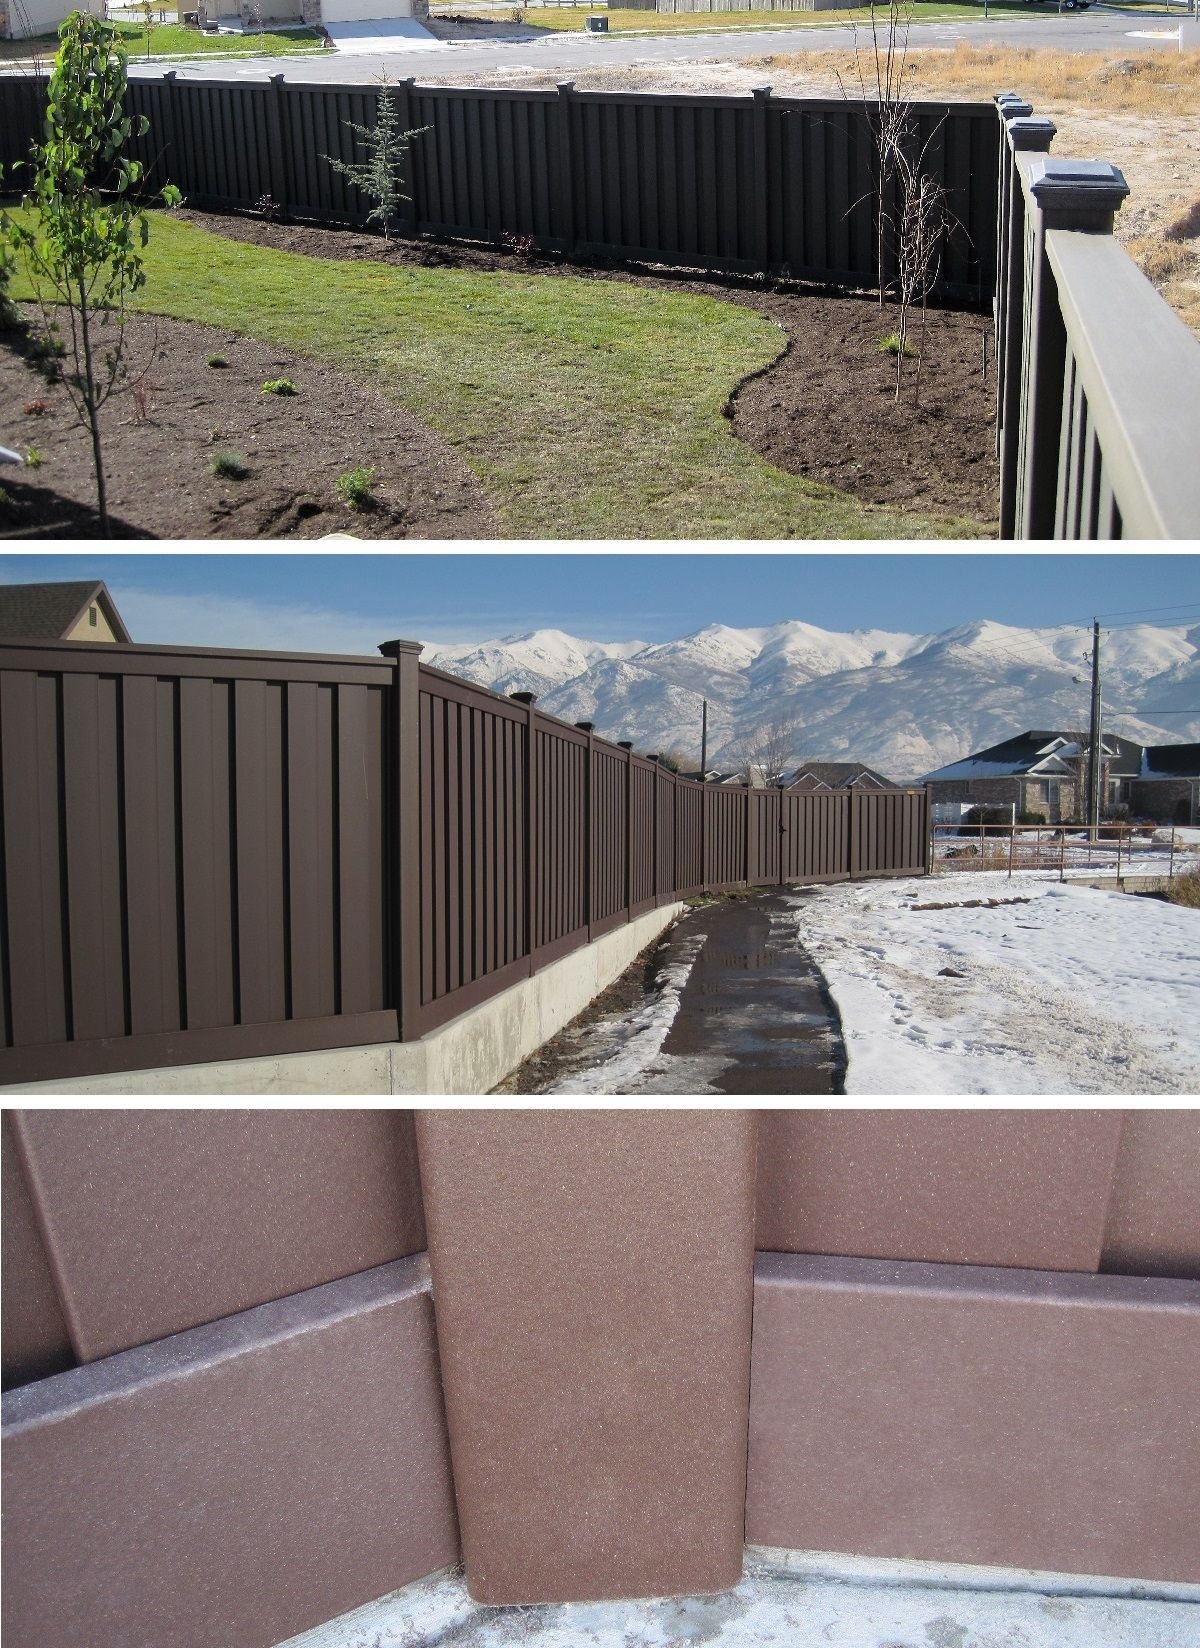 Use Angle Adaptors For Fences That Don T Make 90 Degree Turns Trexfencing Wood Vinyl Trex Fencing Fence Design